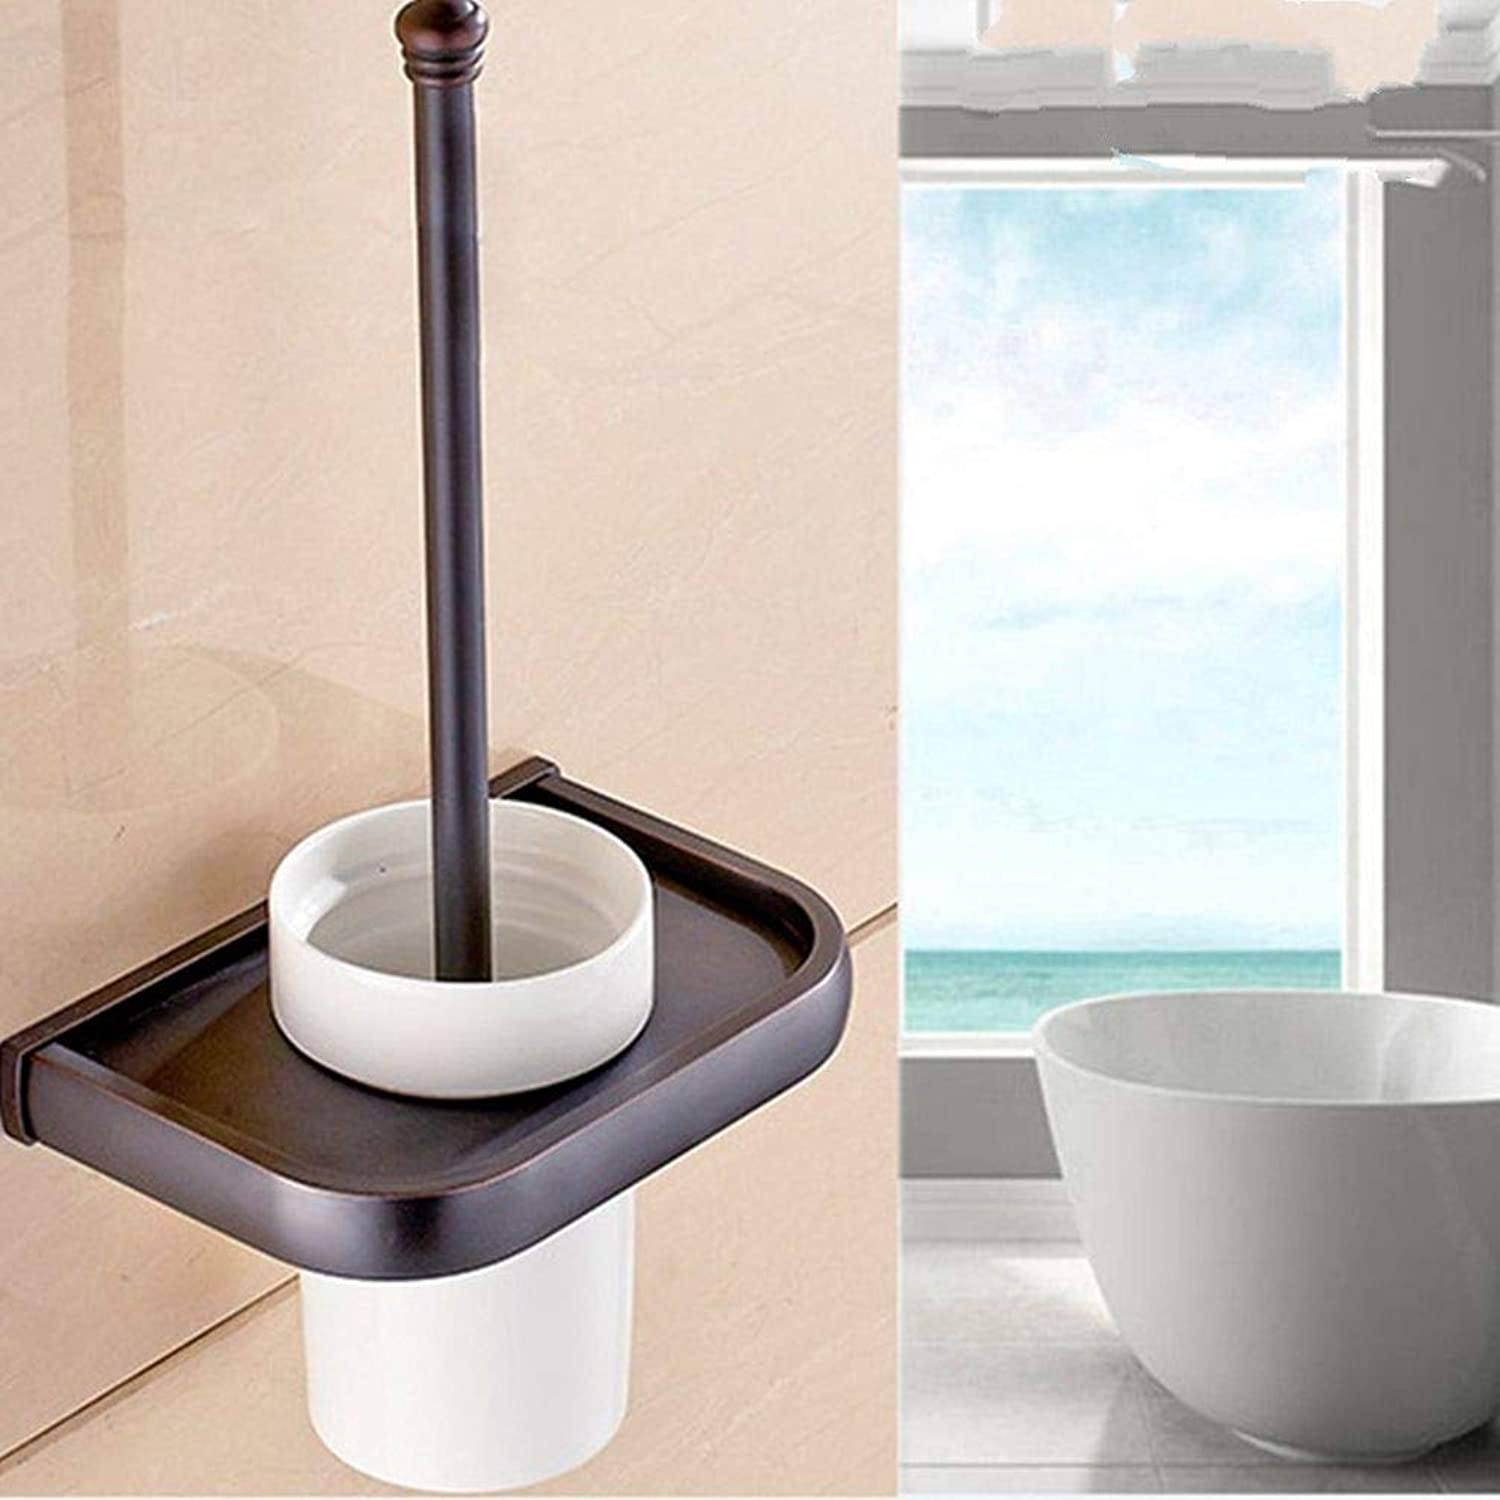 LUDSUY Contemporary Simplicity Toilet Brush Holder for Bathroom ∕ Home ∕ Hotel ∕ Motel, Classic Black, Heavy DutyBathroom Accessories